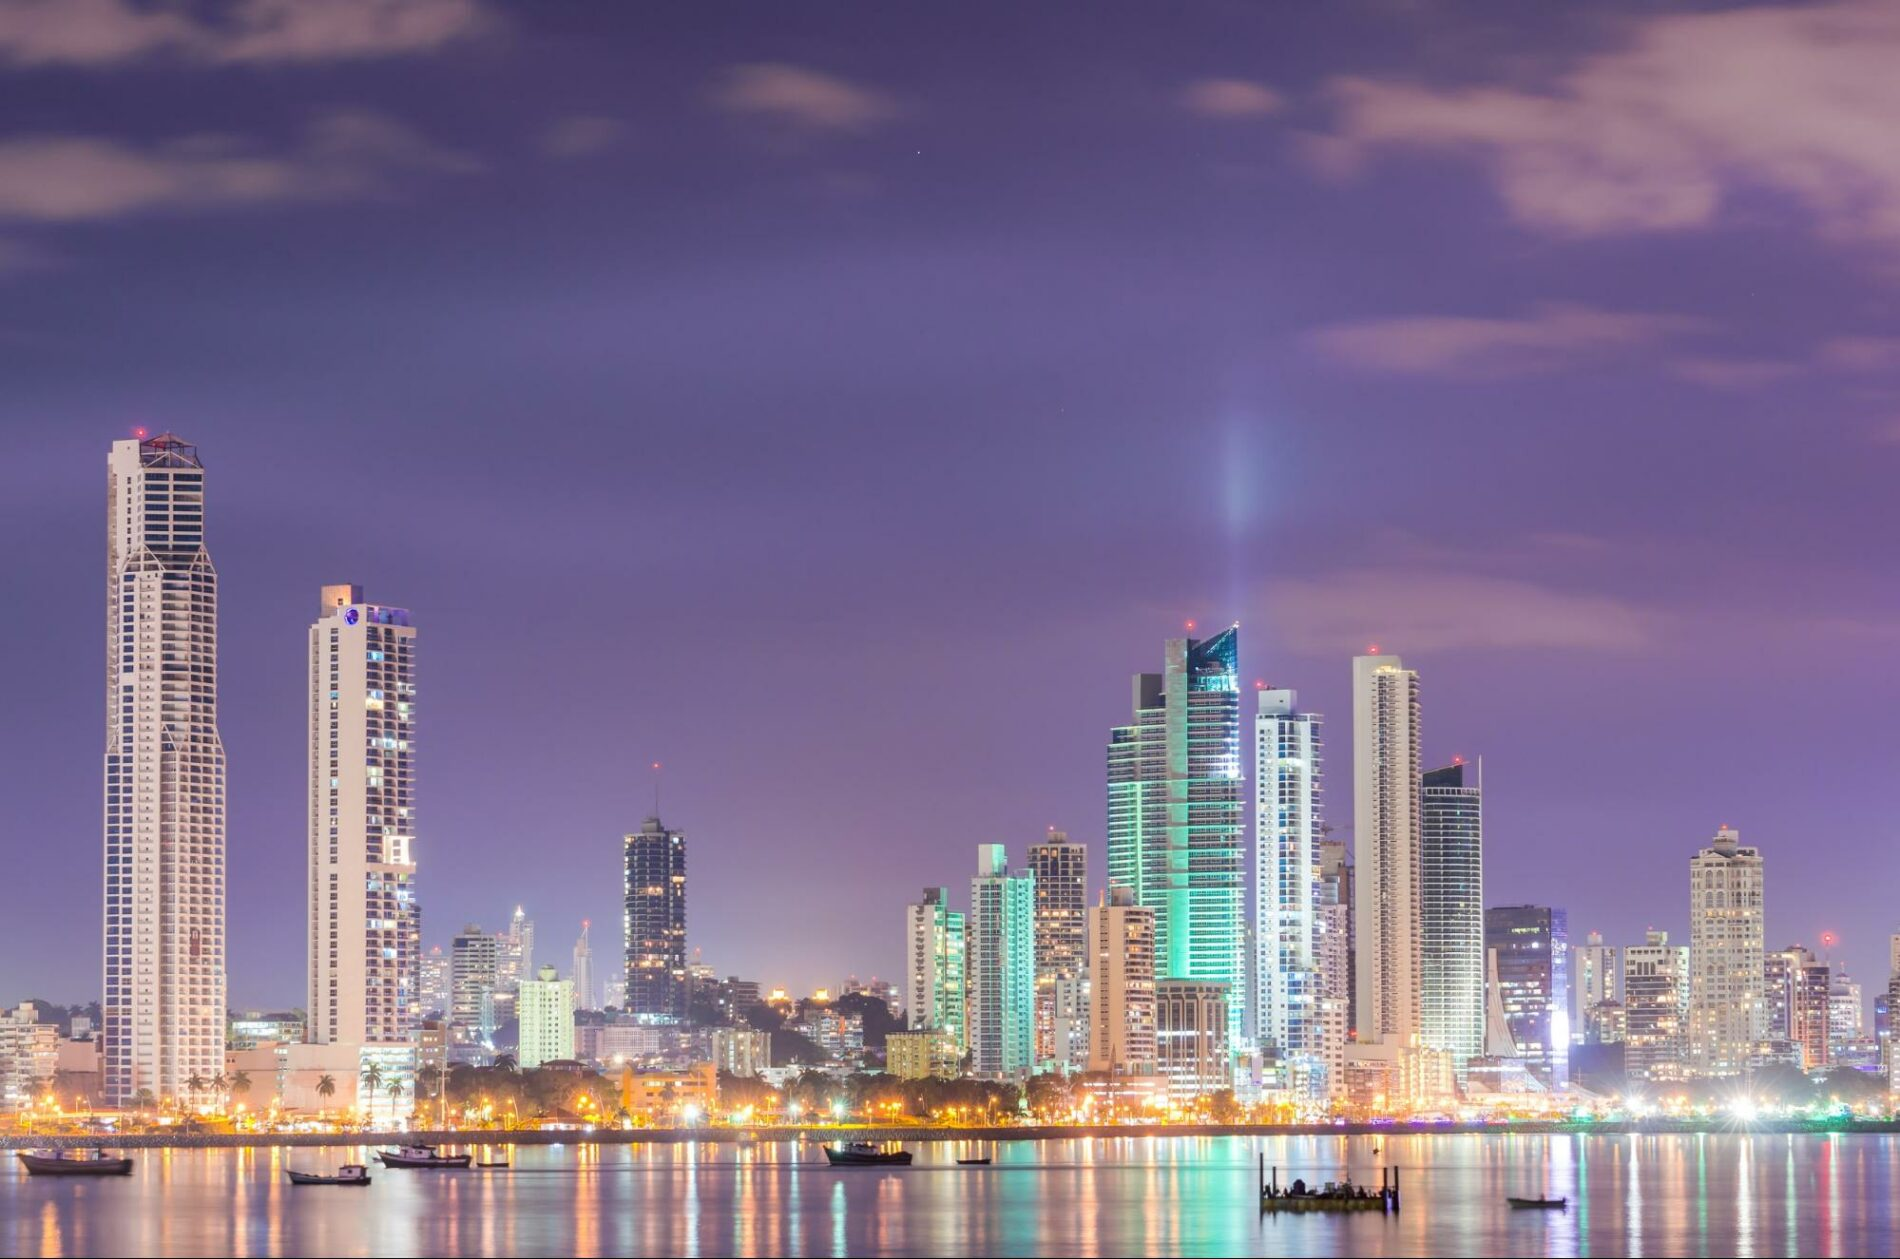 Night Skyline of Panama City which sits on the Pacific coast, close to the Panama Canal